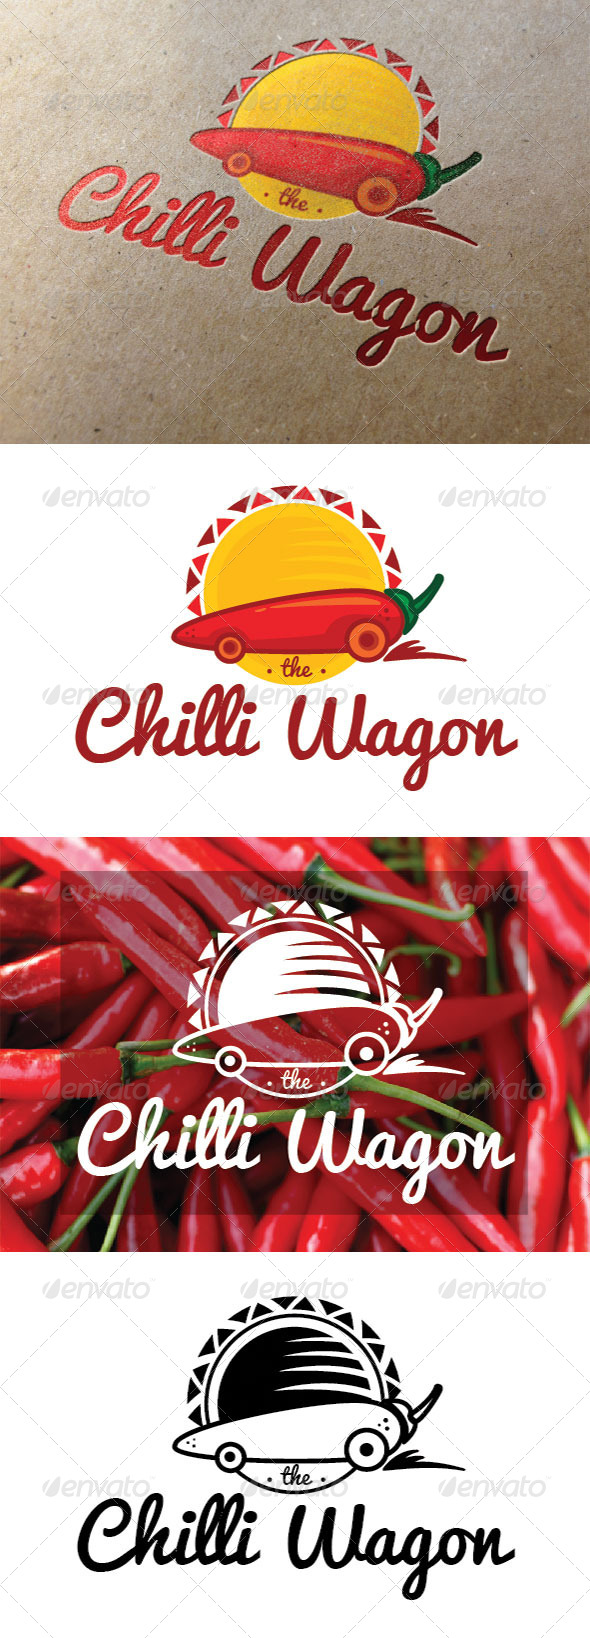 GraphicRiver Chili Wagon Logo 7837186